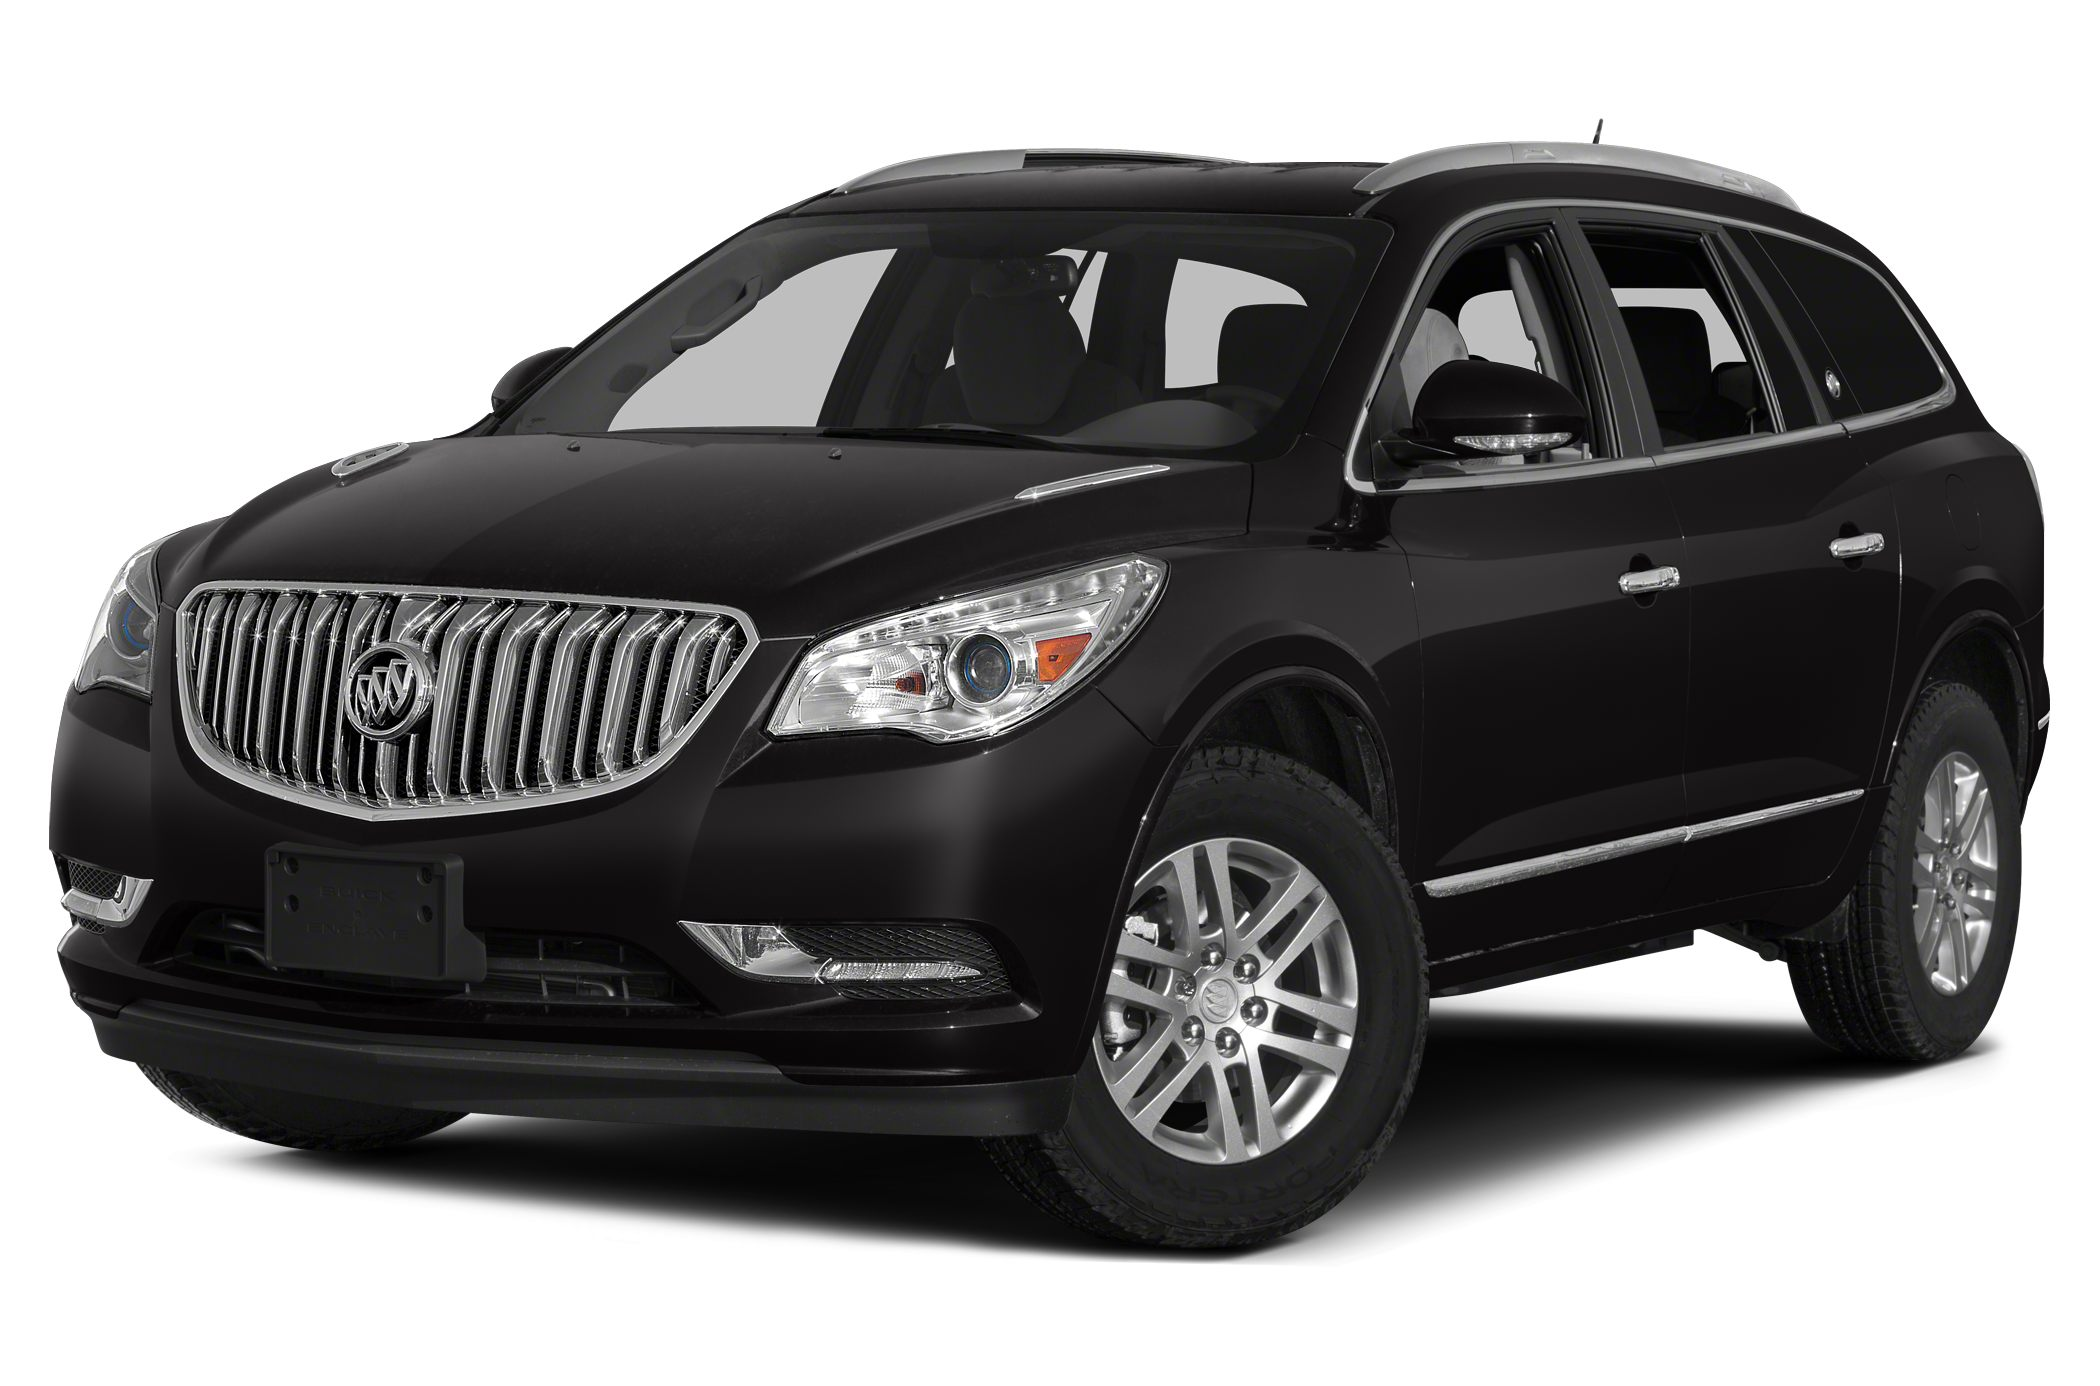 2015 Buick Enclave Leather SUV for sale in Potsdam for $48,385 with 0 miles